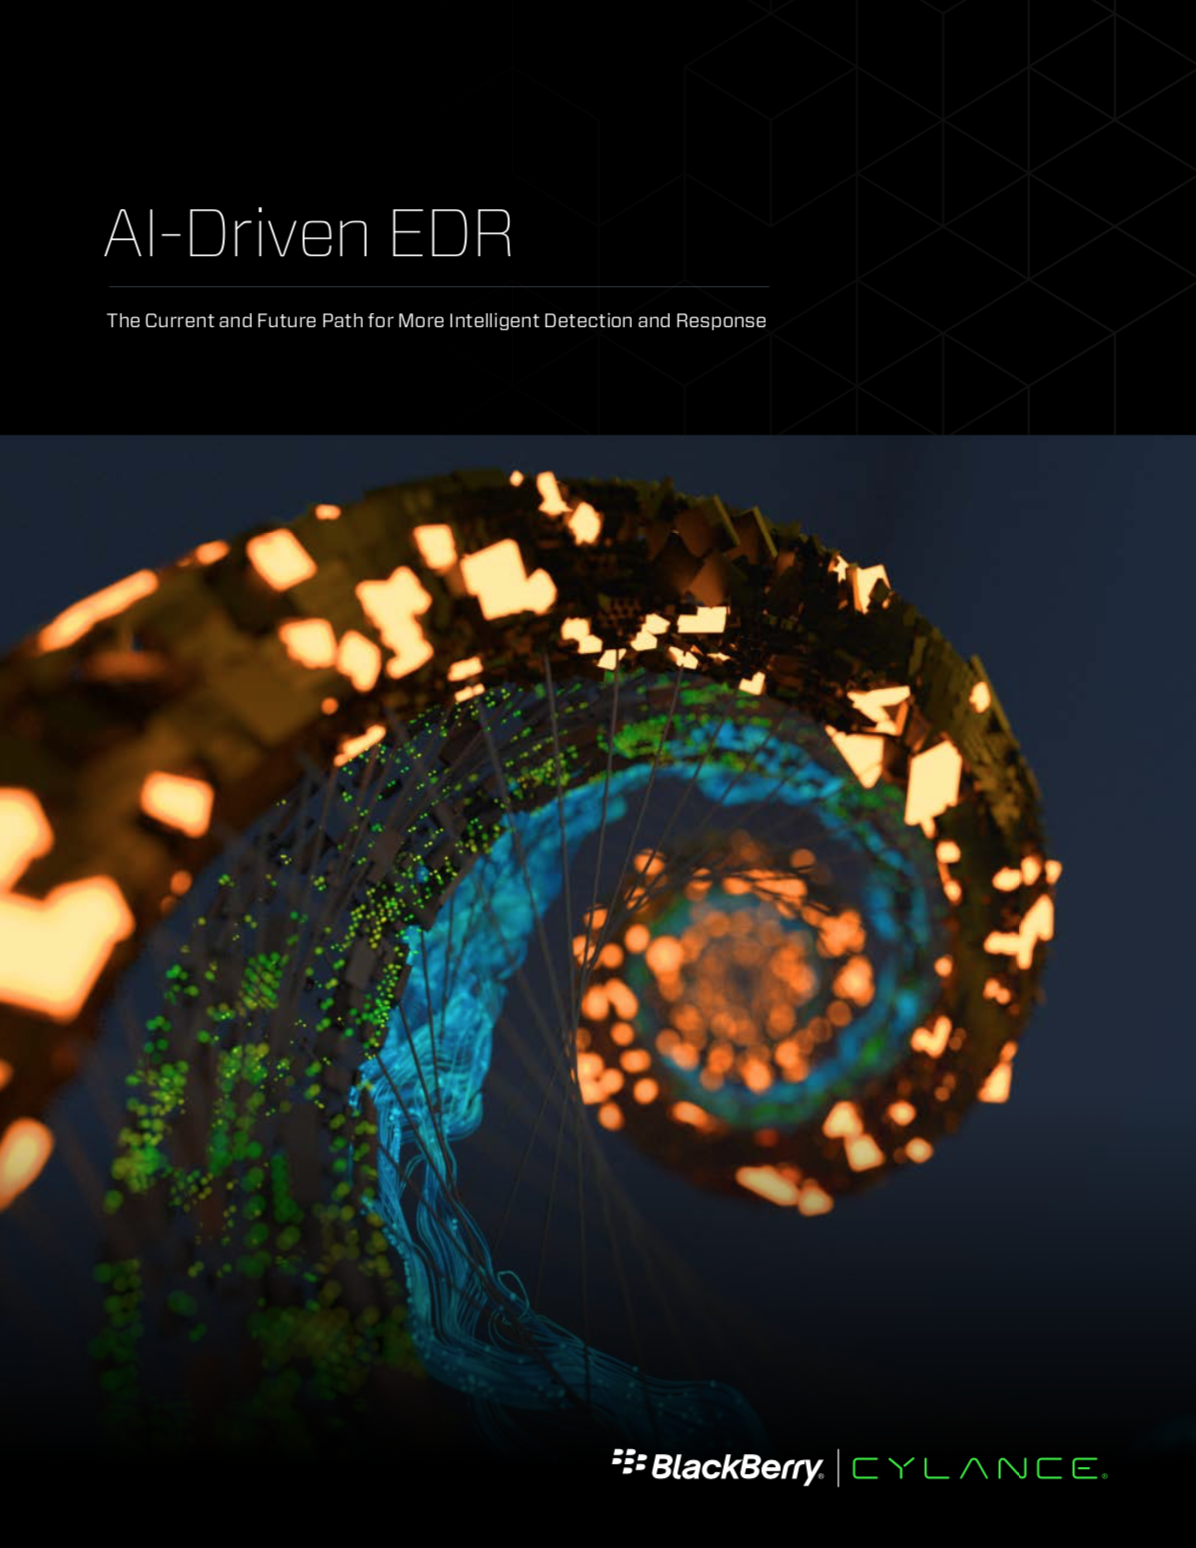 AI-Driven EDR - The Current and Future Path for More Intelligent Detection and Response